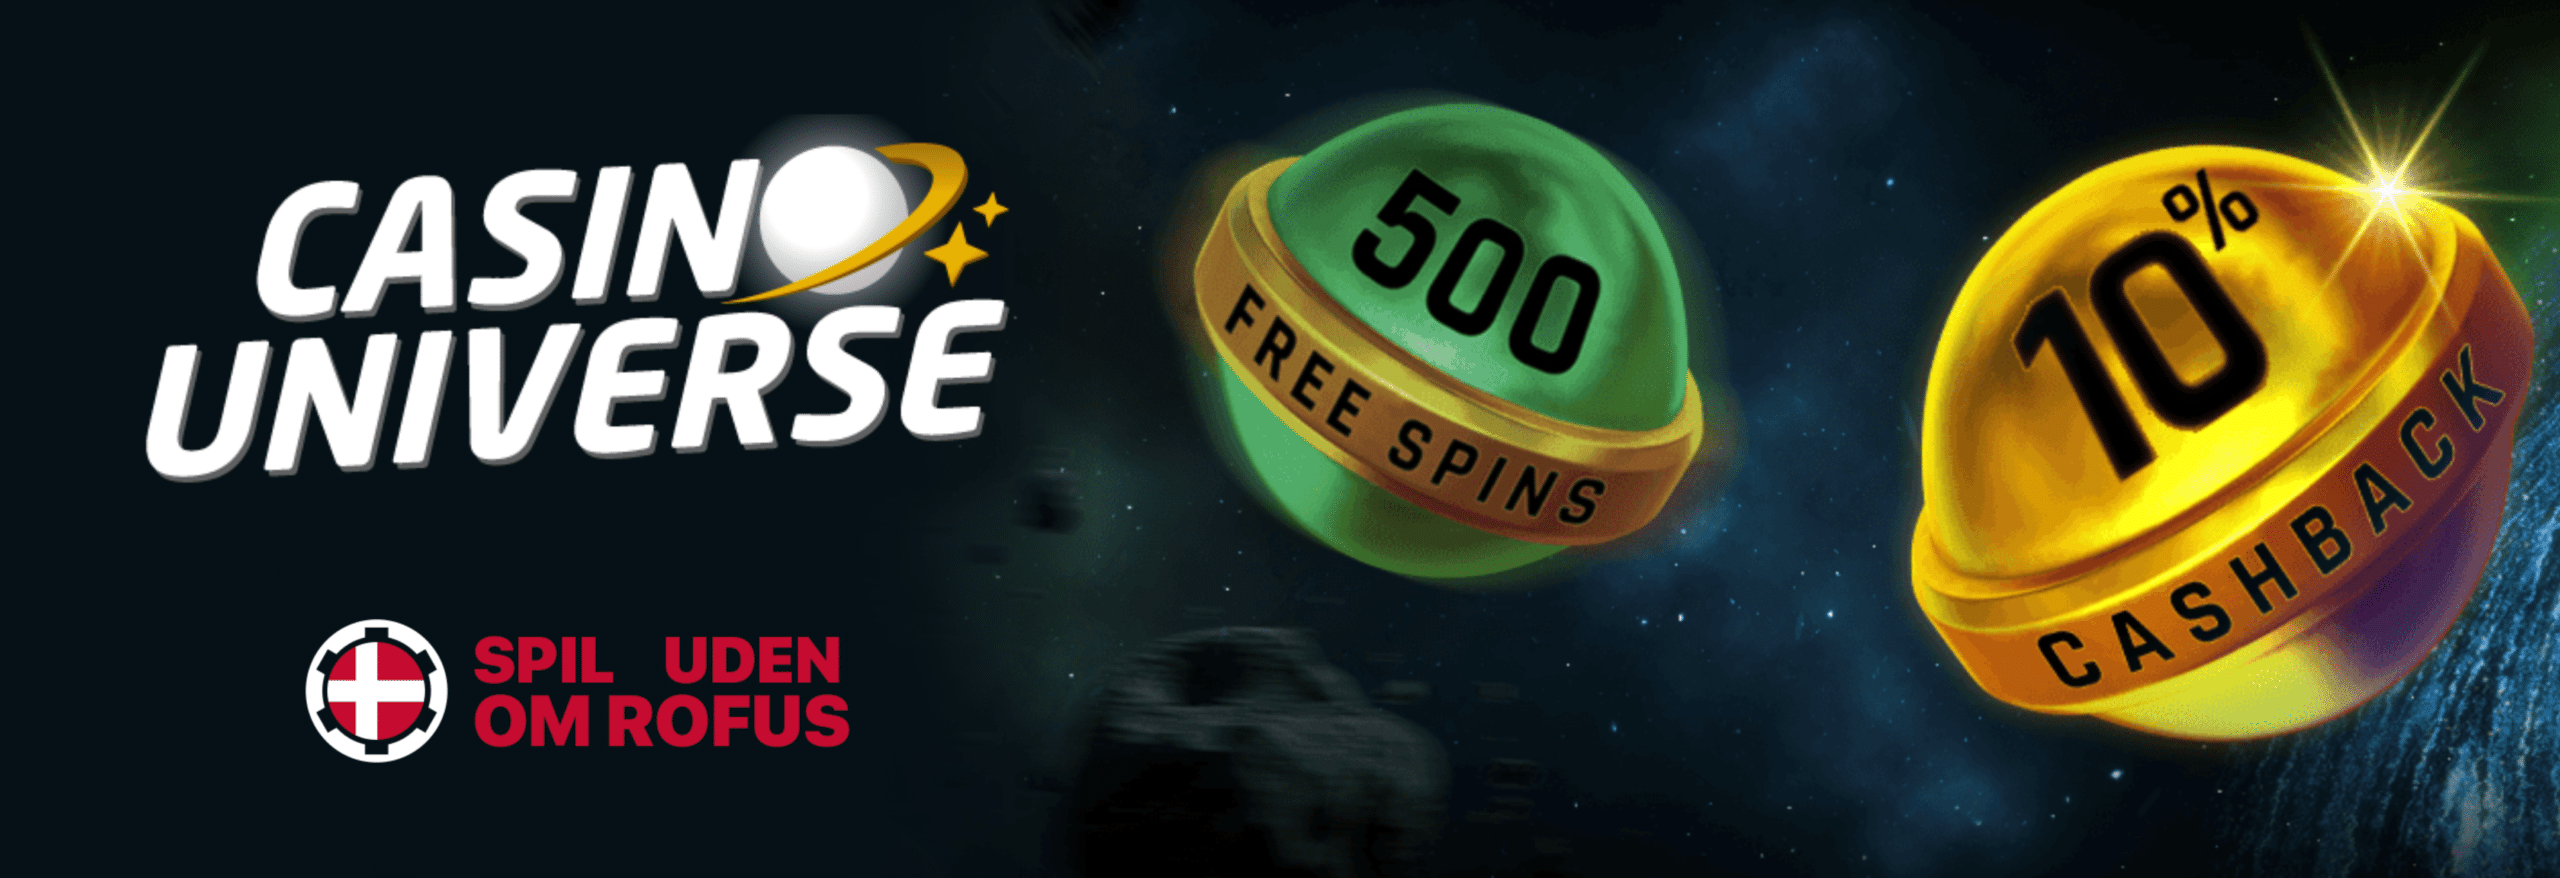 casino universe recension spiludenomrofus